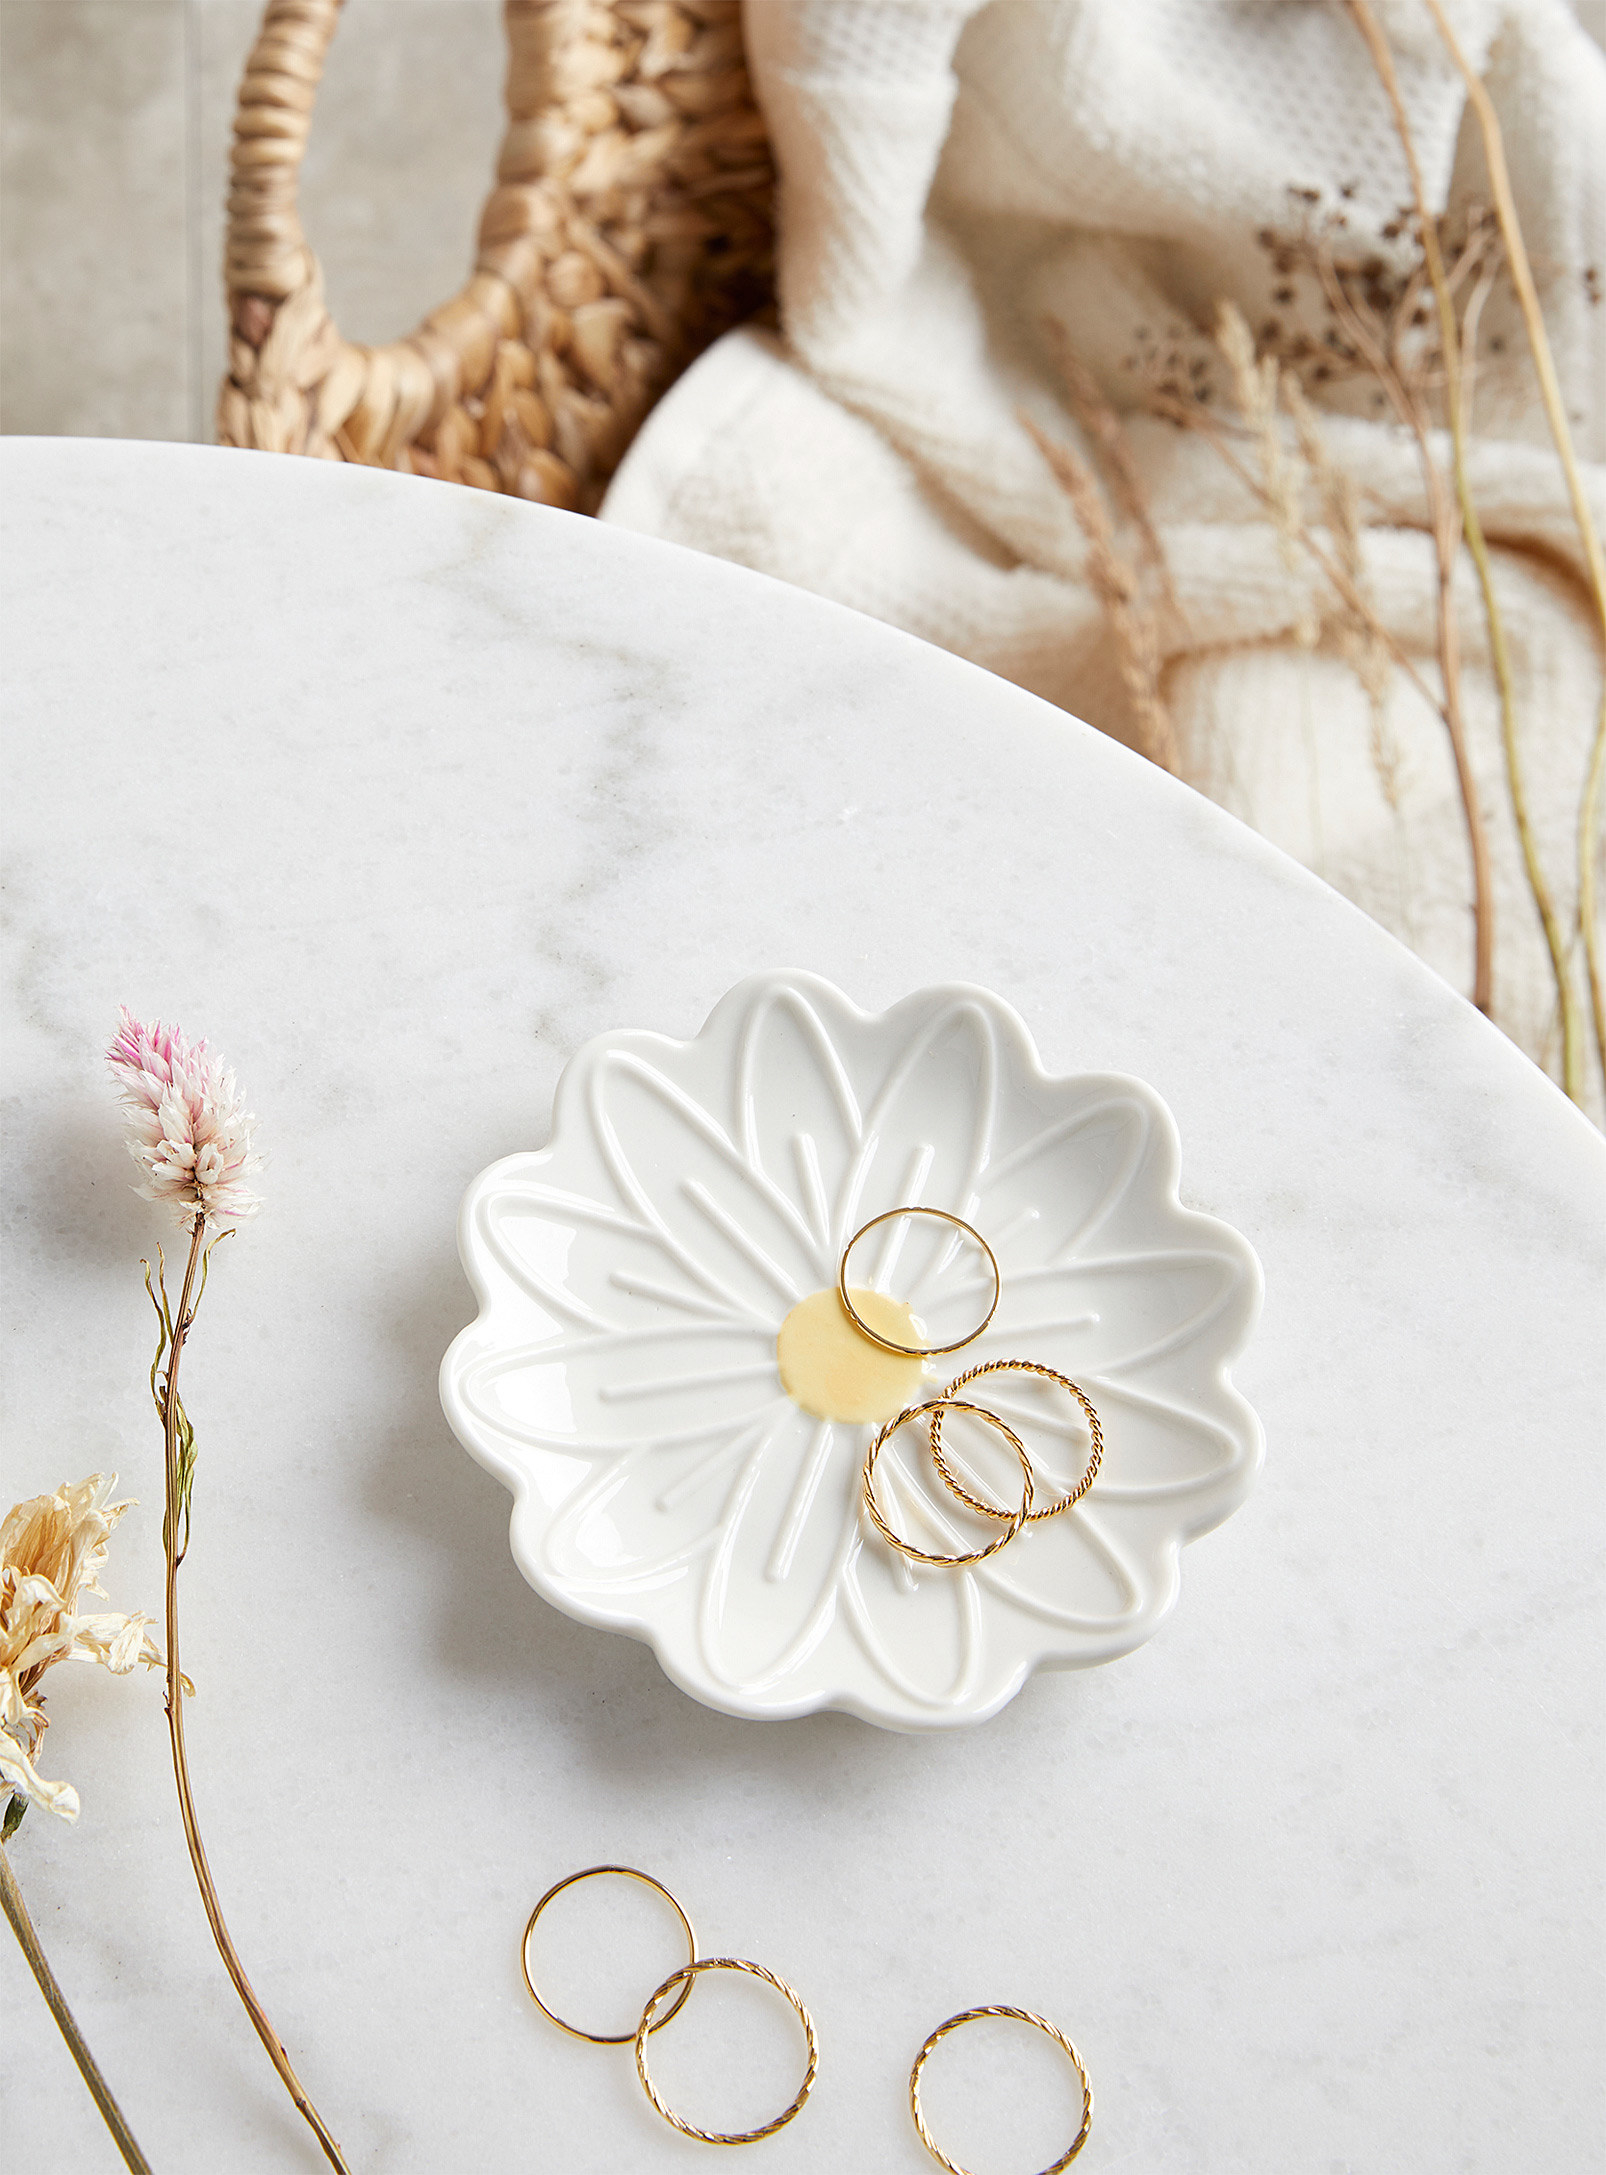 A flower-shaped ceramic trinket dish with rings on it